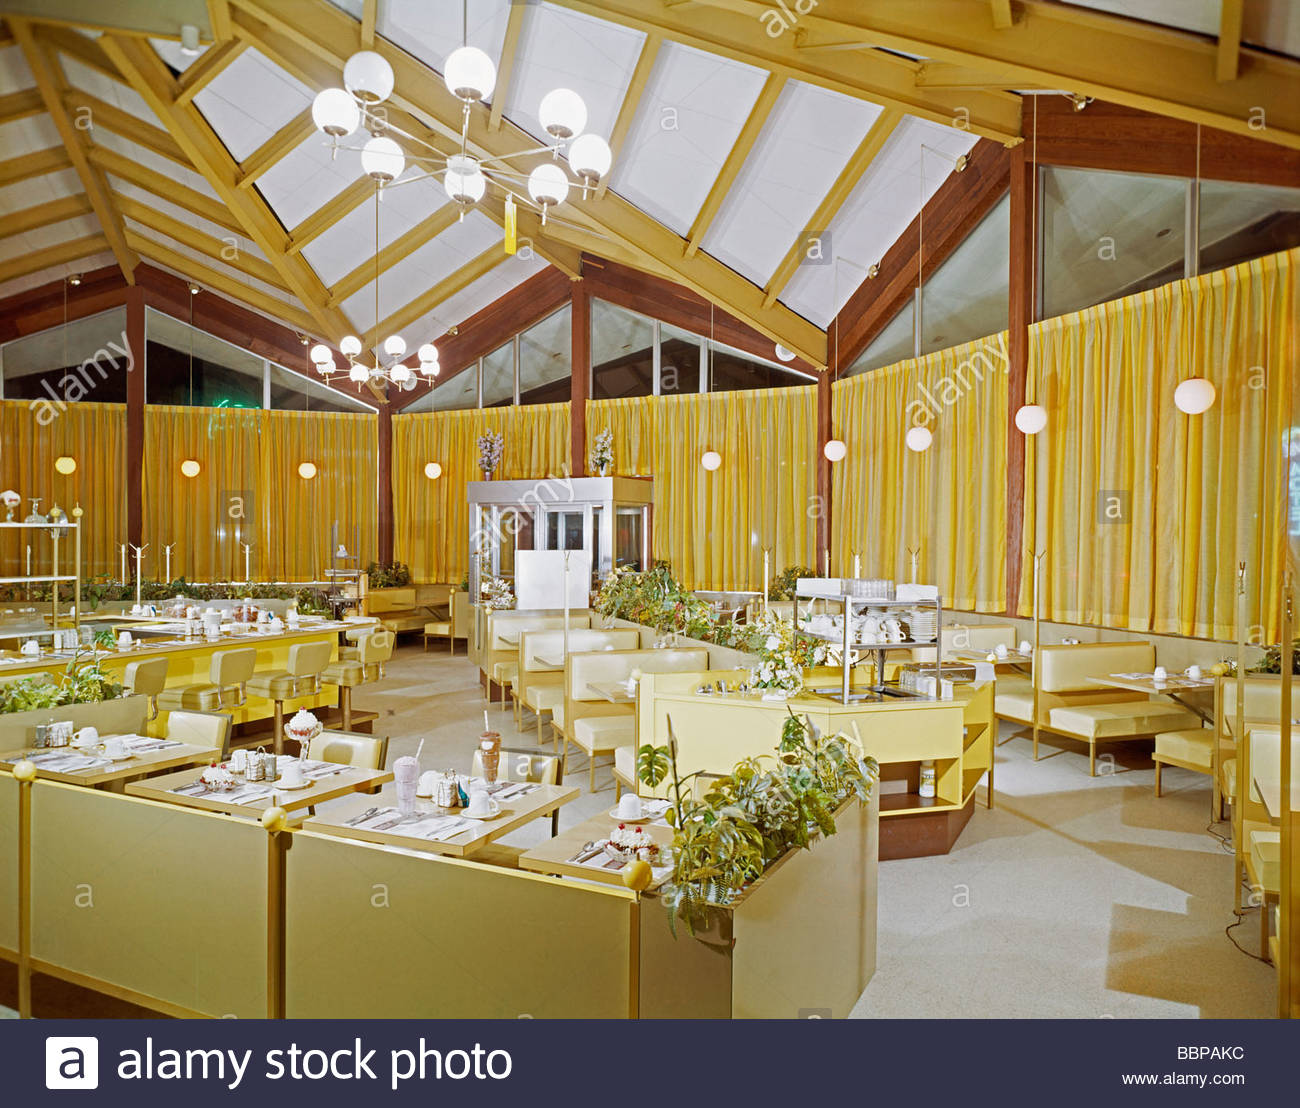 Surfside Restaurant Wildwood NJ Night Interior 1960s This Building Was Taken Apart Moved Reused For The Doo Wop Museum